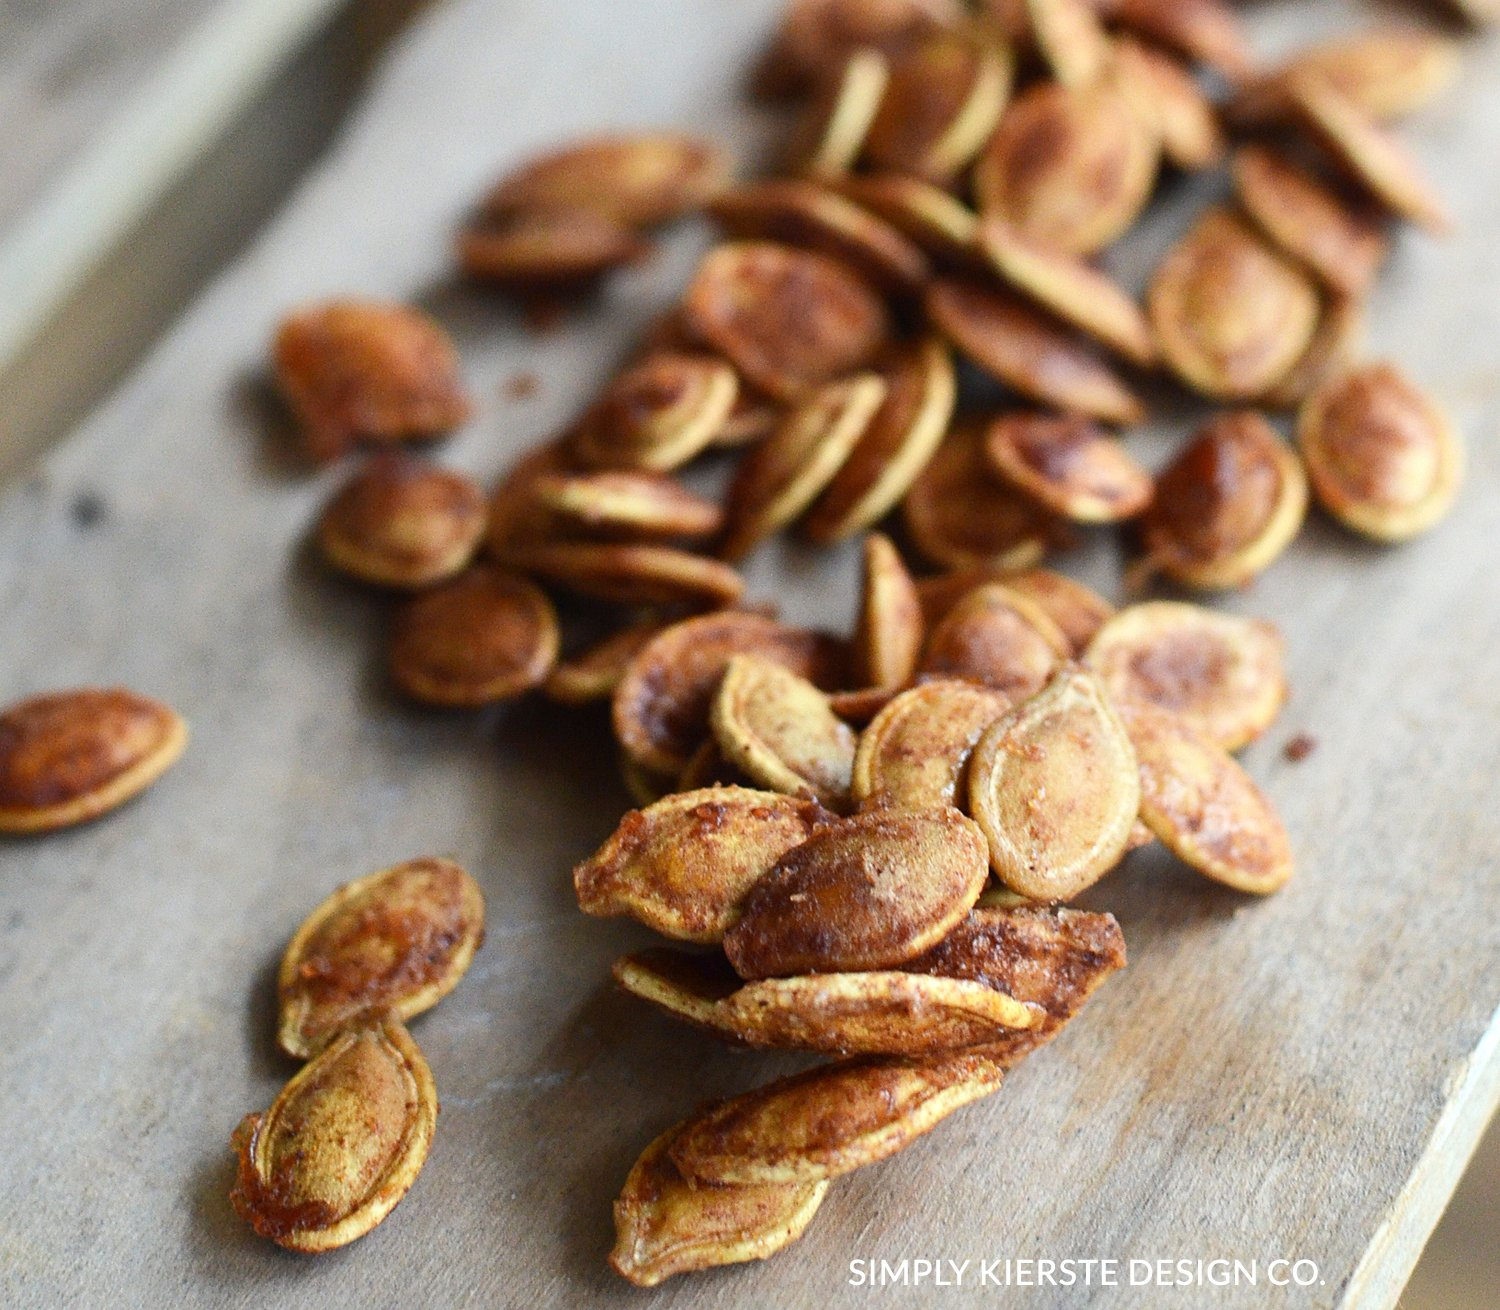 Toasted Pumpkin Seeds | Cinnamon & Sugar Pumpkin Seeds | Fall Recipes | oldsaltfarm.com